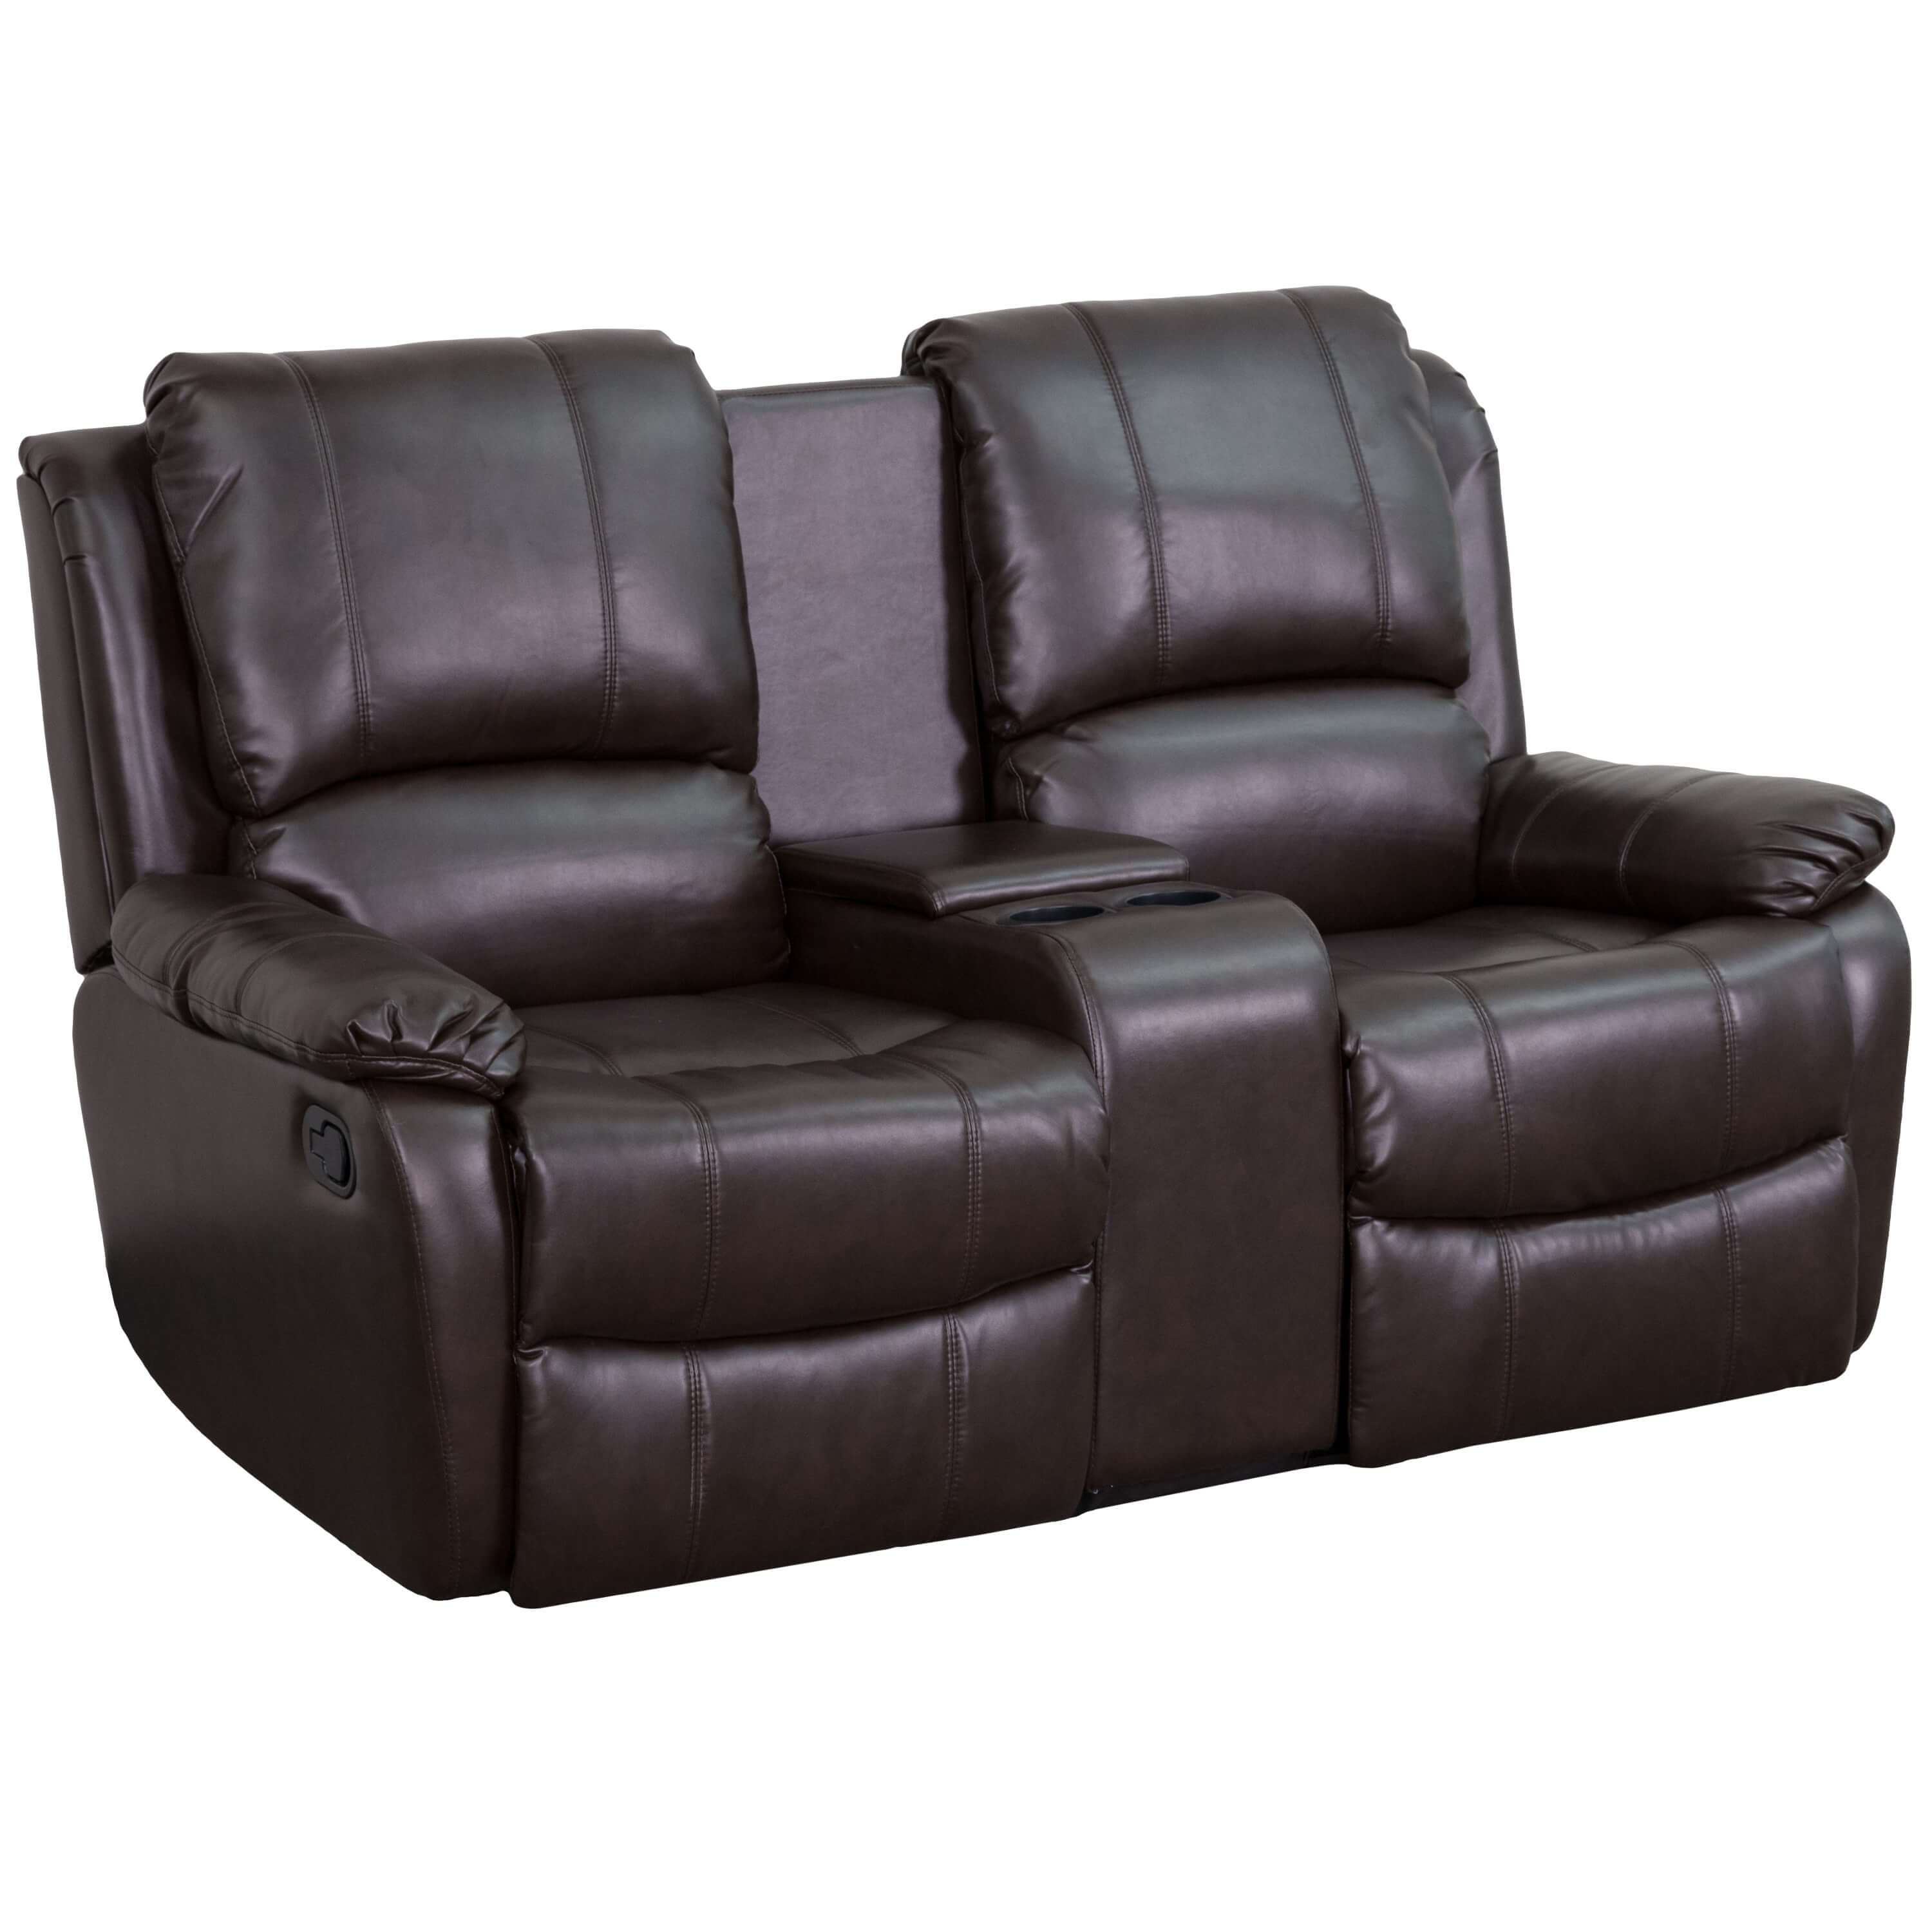 Charmant Home Theatre Seating Recliner Chair With Cup Holder